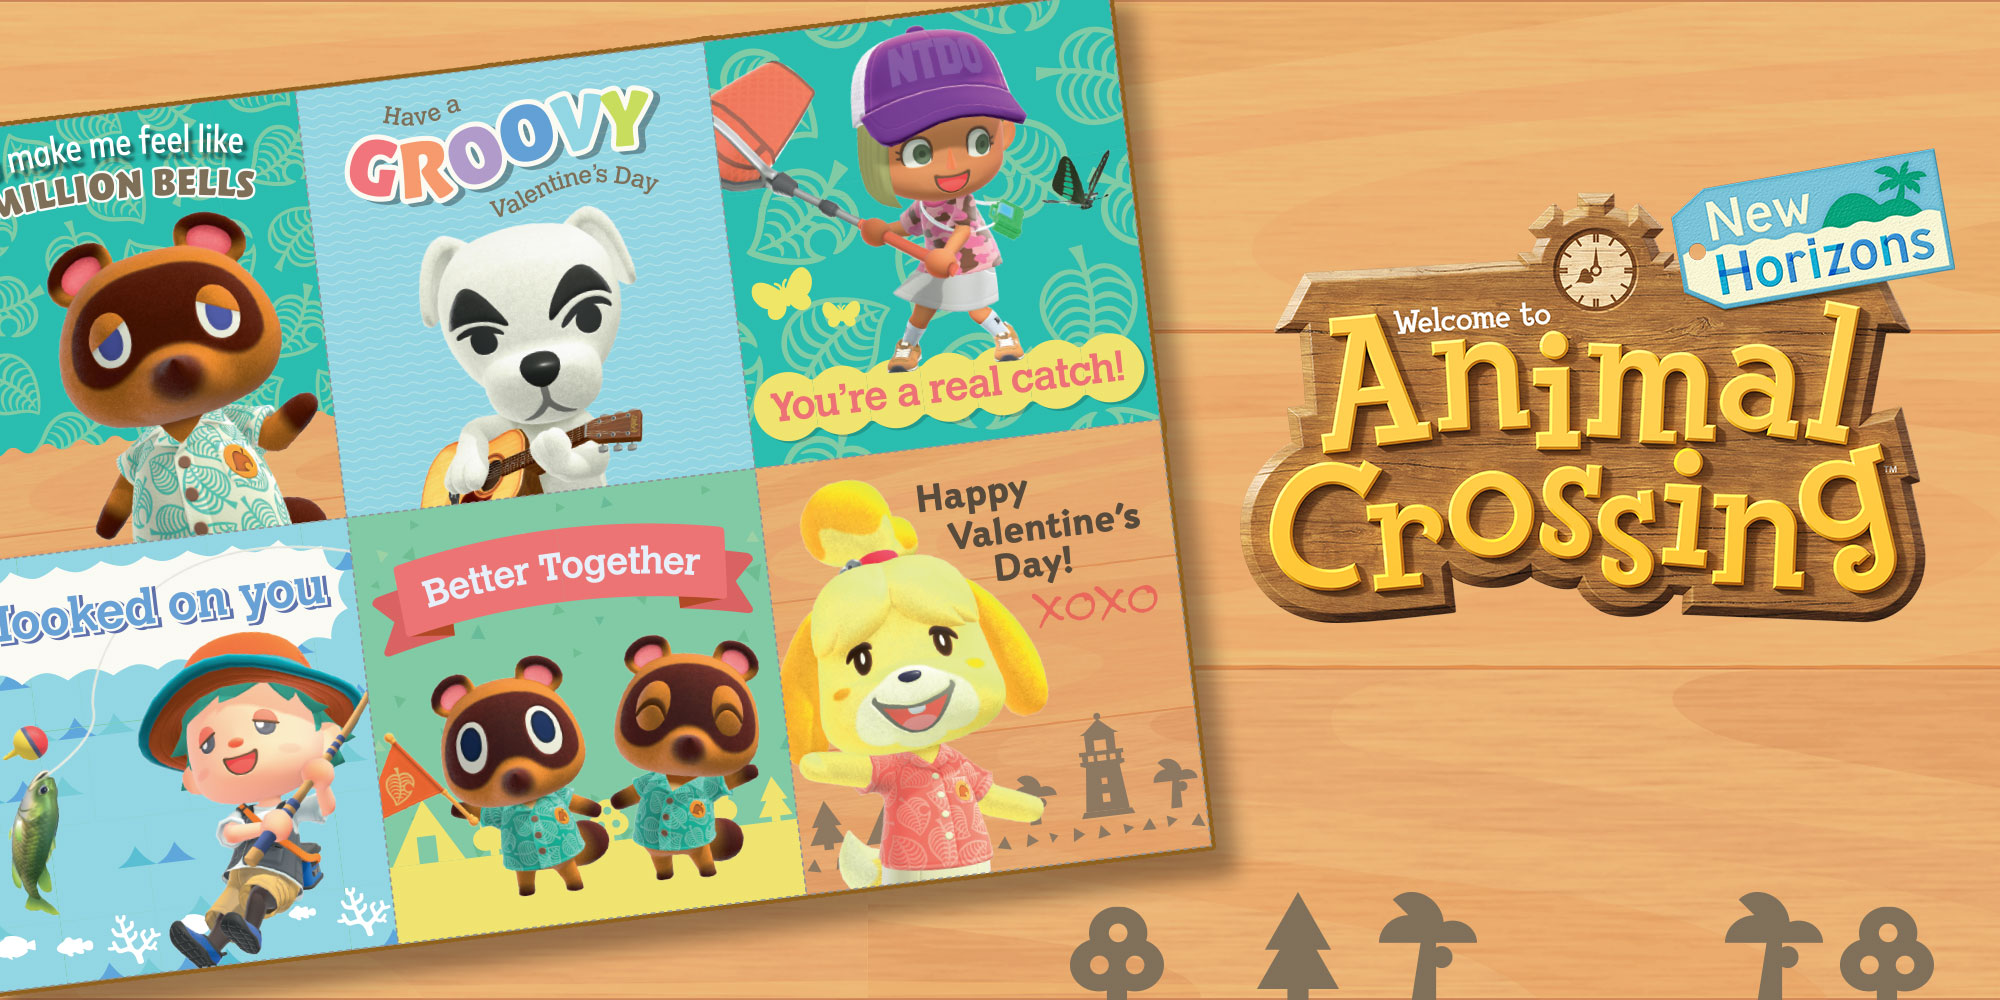 Celebrate Valentine's Day with these adorable Animal Crossing cards!